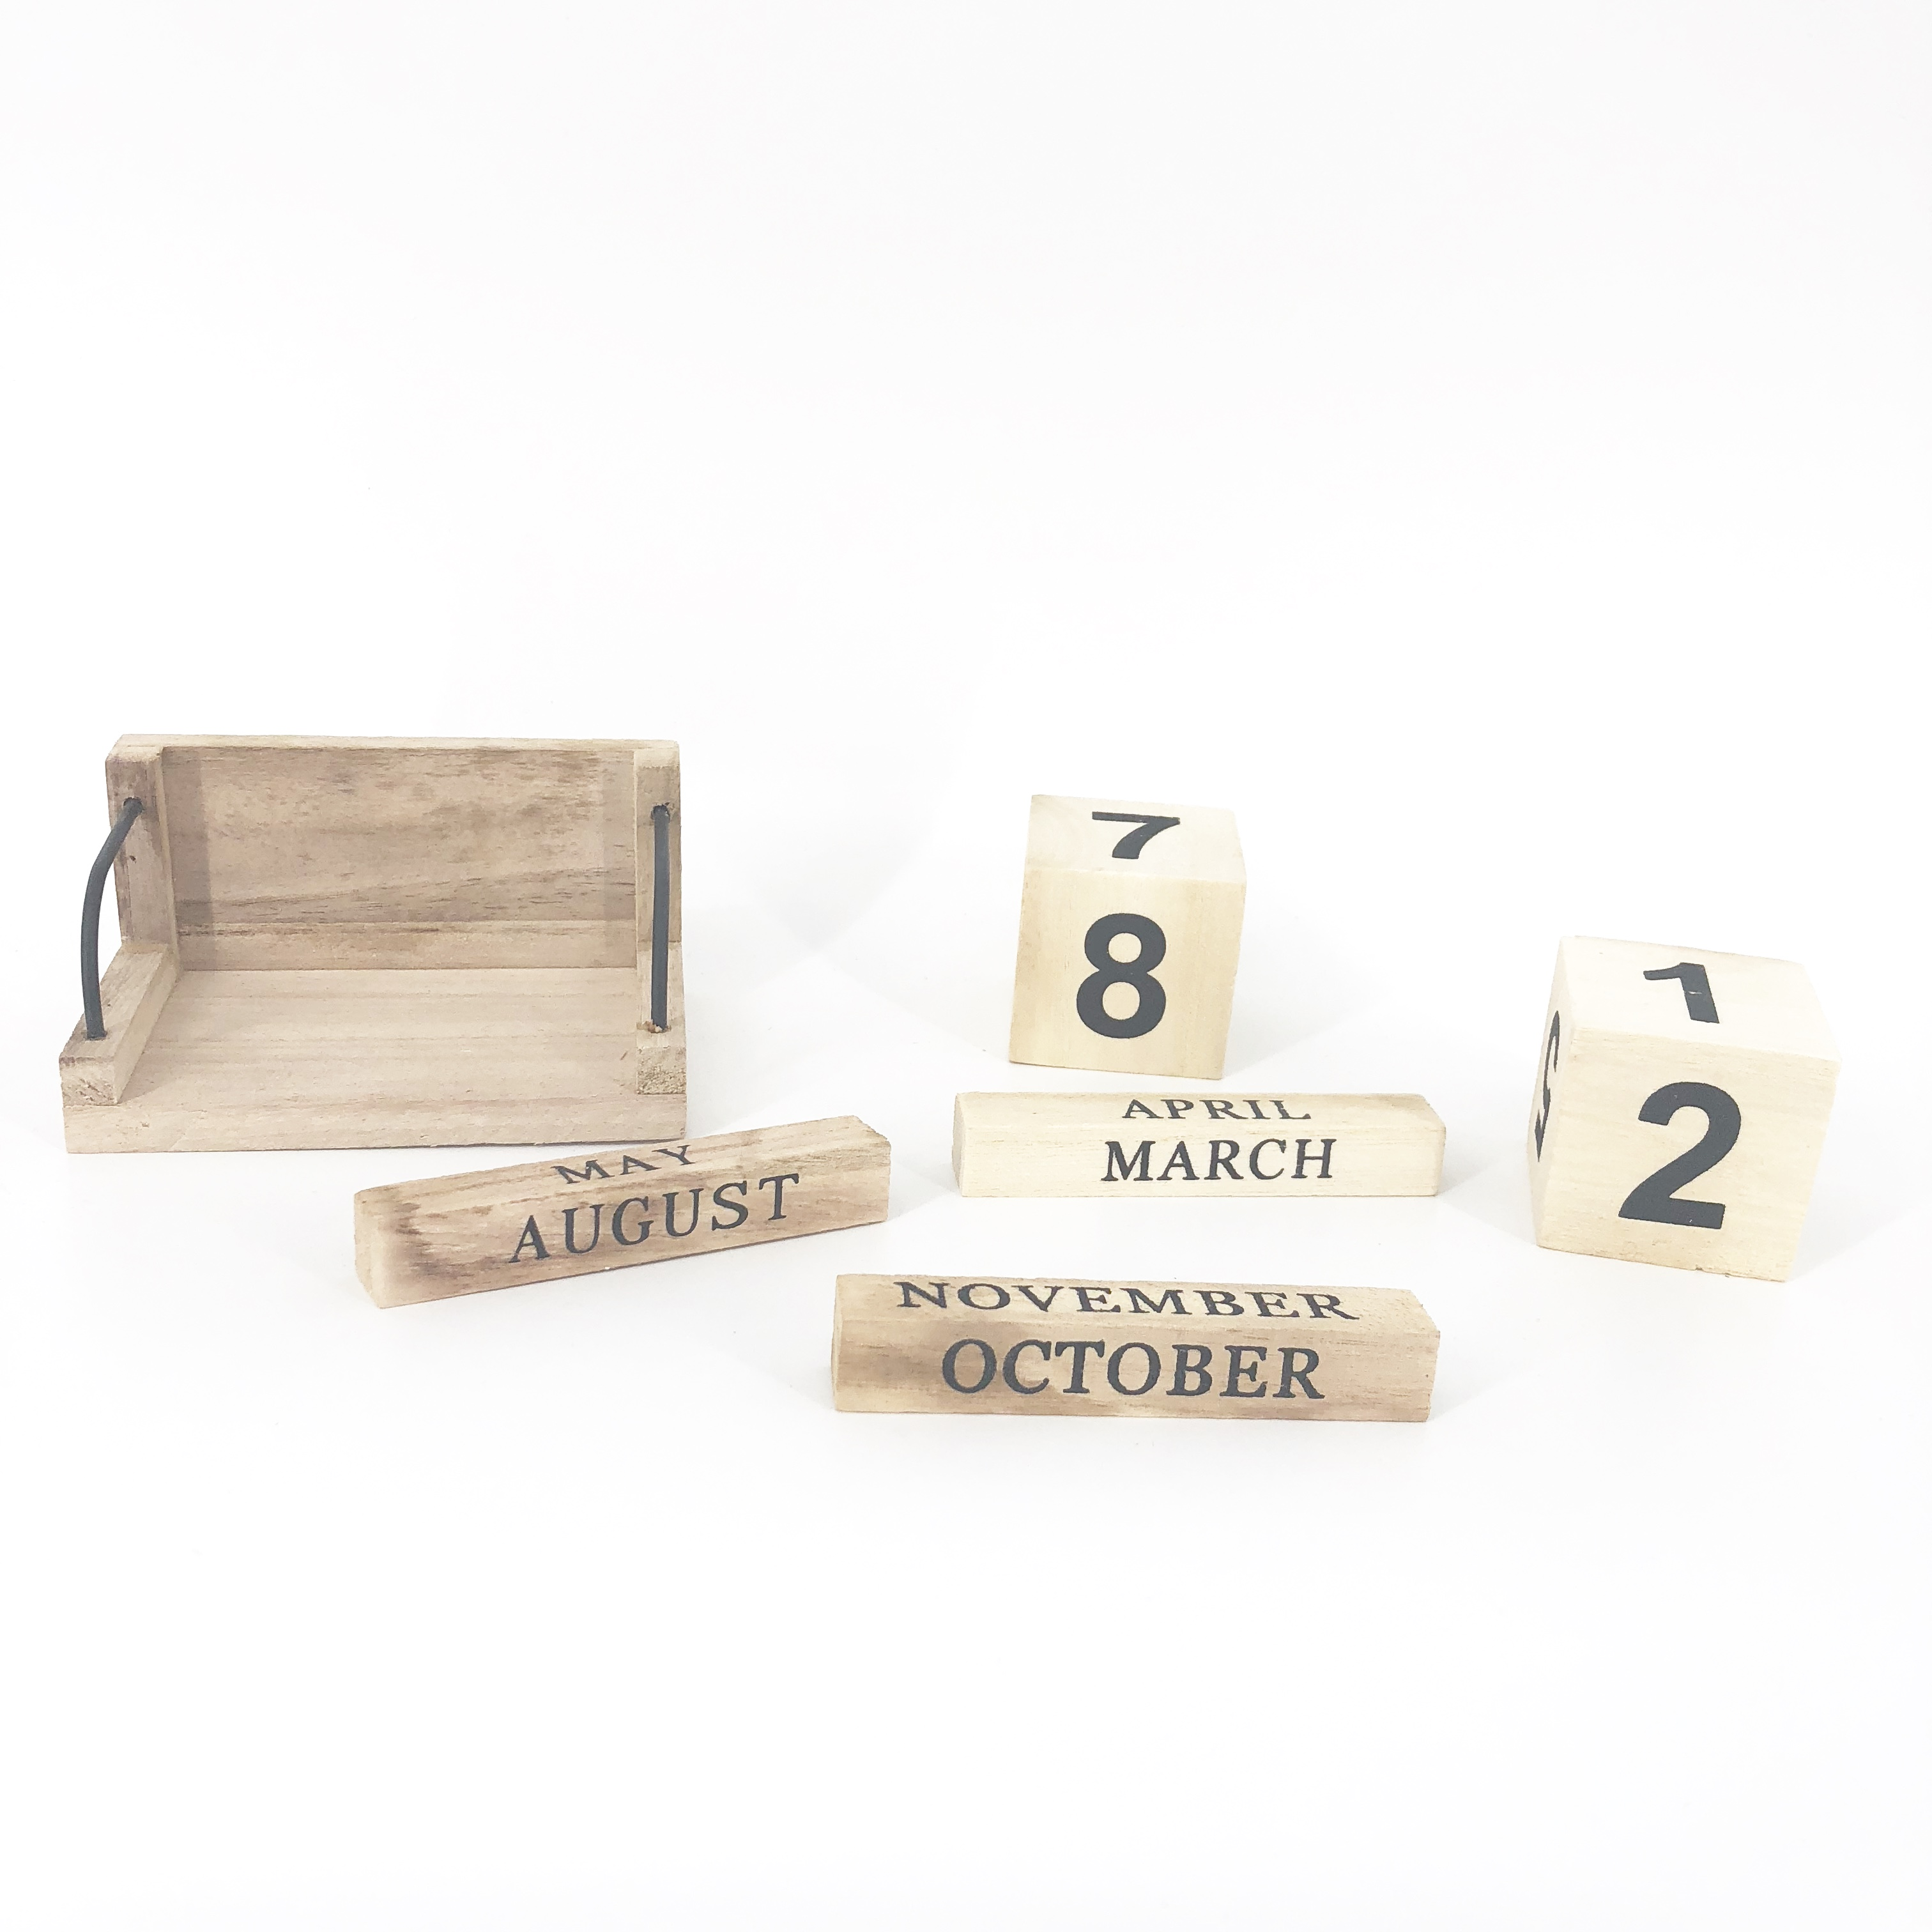 new products Vintage Wooden Block Desk Accessory Shabby Rustic Chic Number Perpetual Calendar